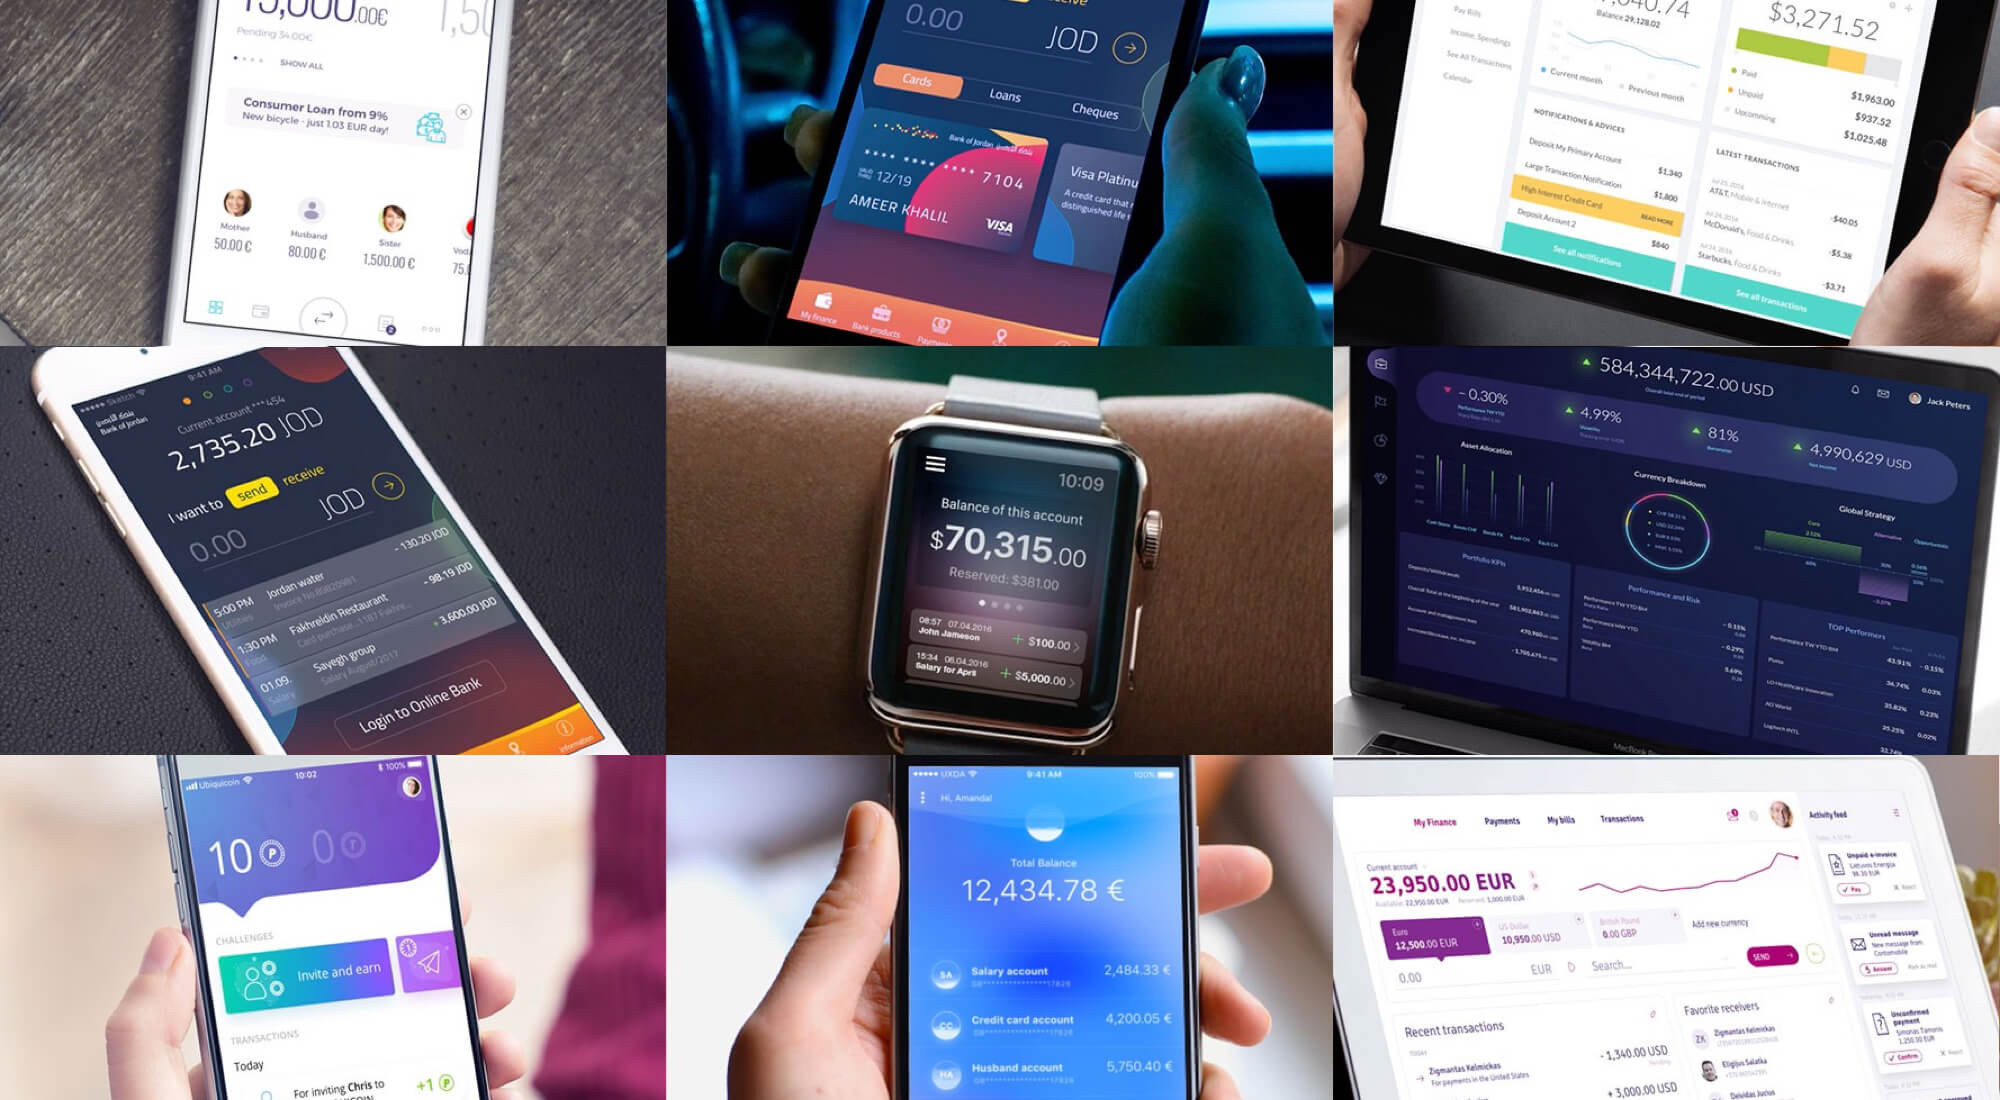 A Collection of 10 Most Interesting Financial Services UI/UX Designs